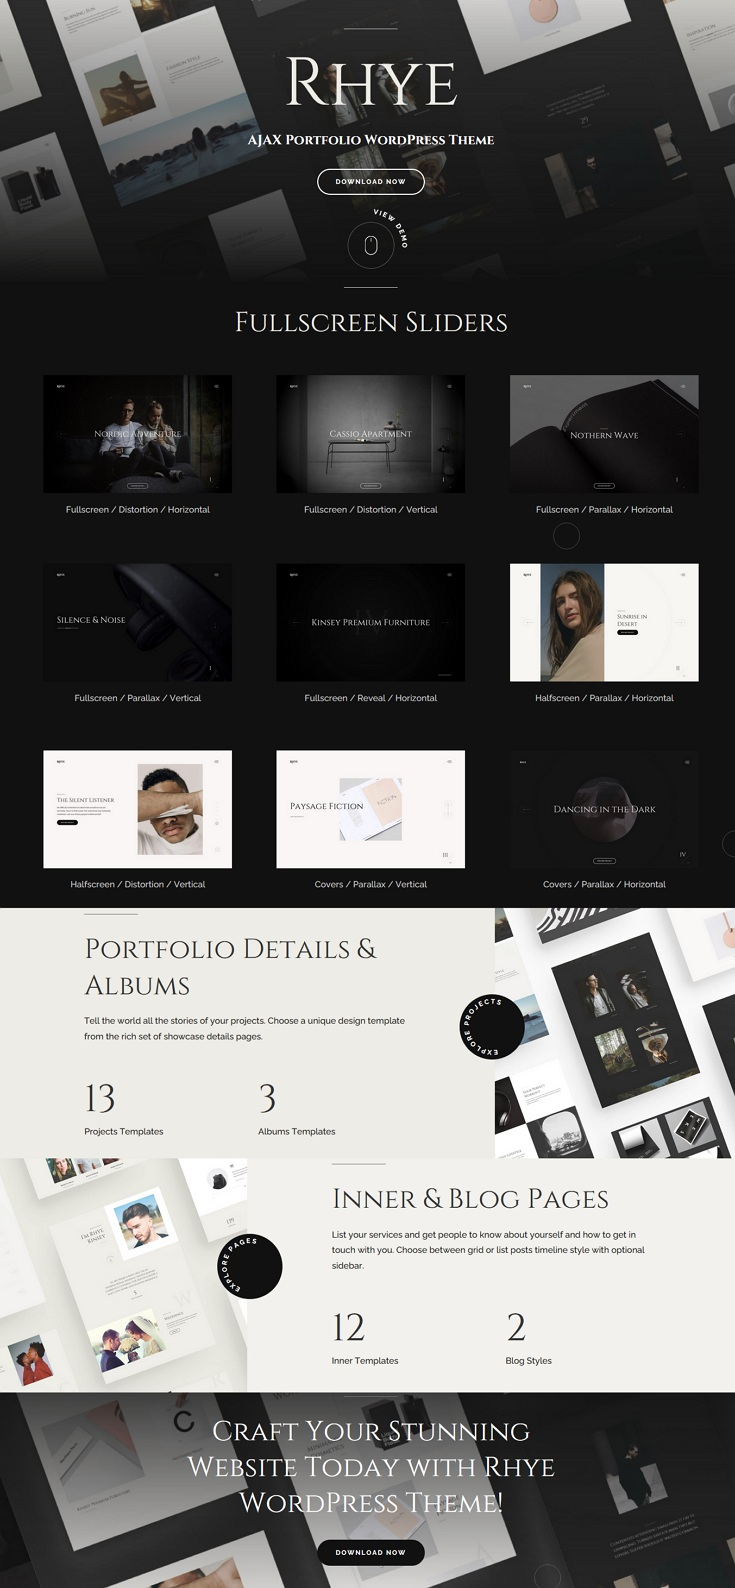 Premium AJAX Portfolio WordPress Theme